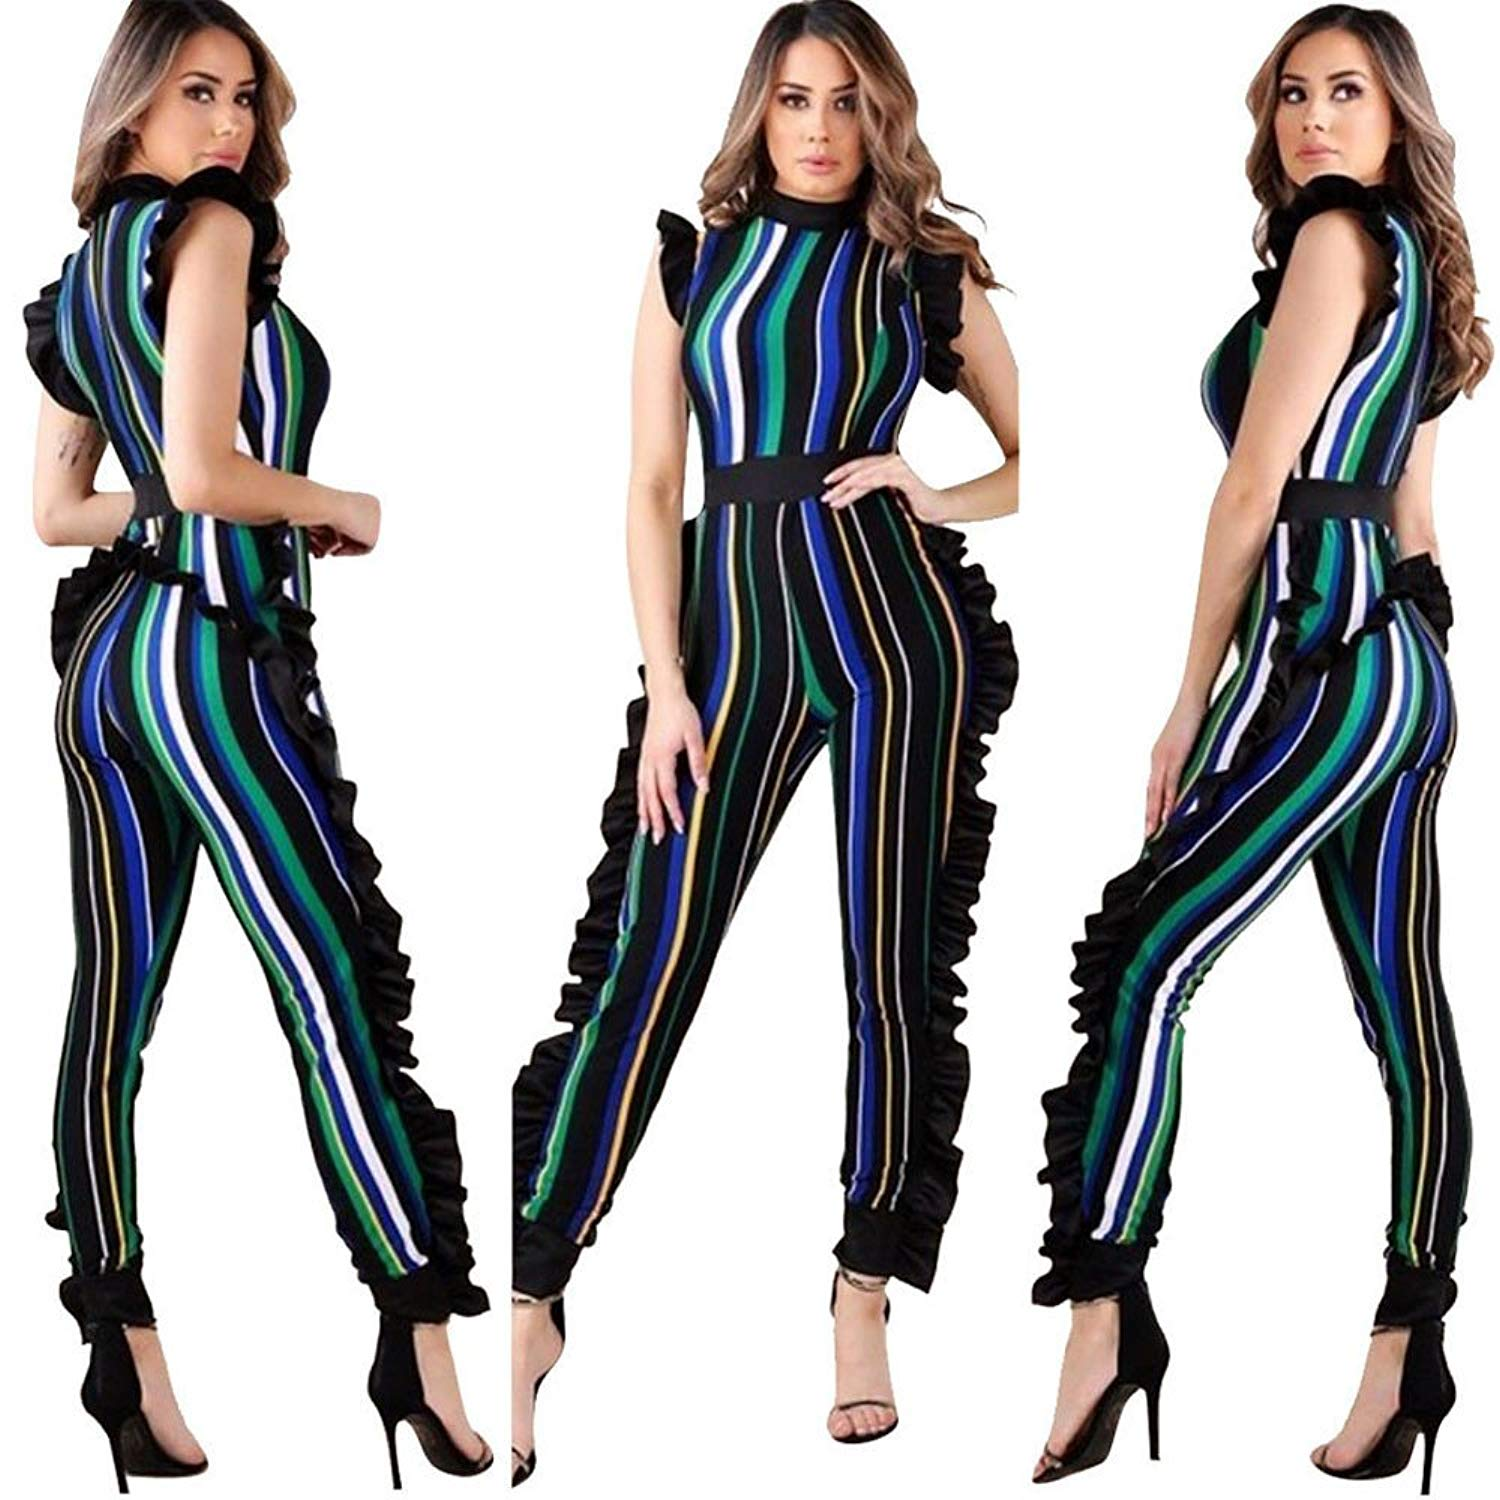 b17acbf80b8 Get Quotations · COOKI Rompers and Jumpsuits for Women Ladies Elegant  Ruffled Colorful Striped Jumpsuits and Rompers Long Pants